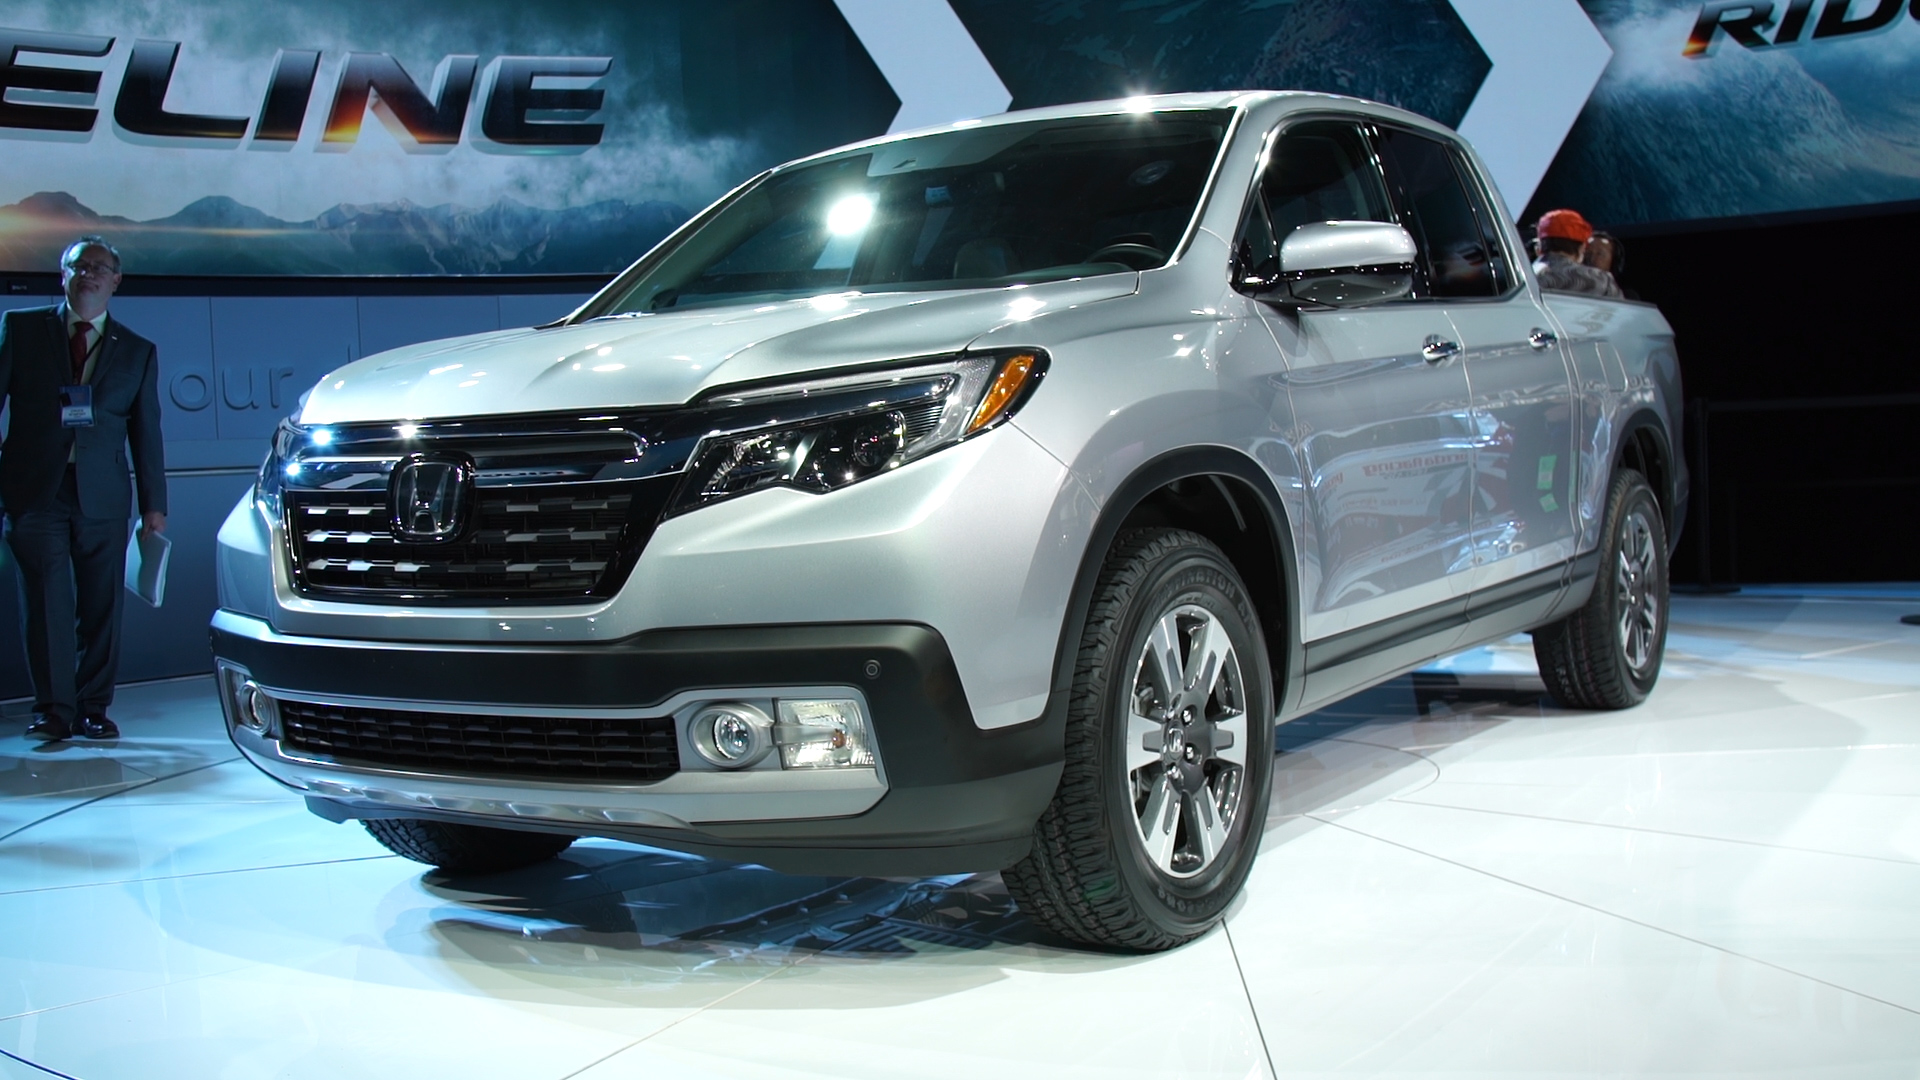 2017 Honda Ridgeline Pickup Truck Looks Conventional but Still Innovative - Consumer  Reports